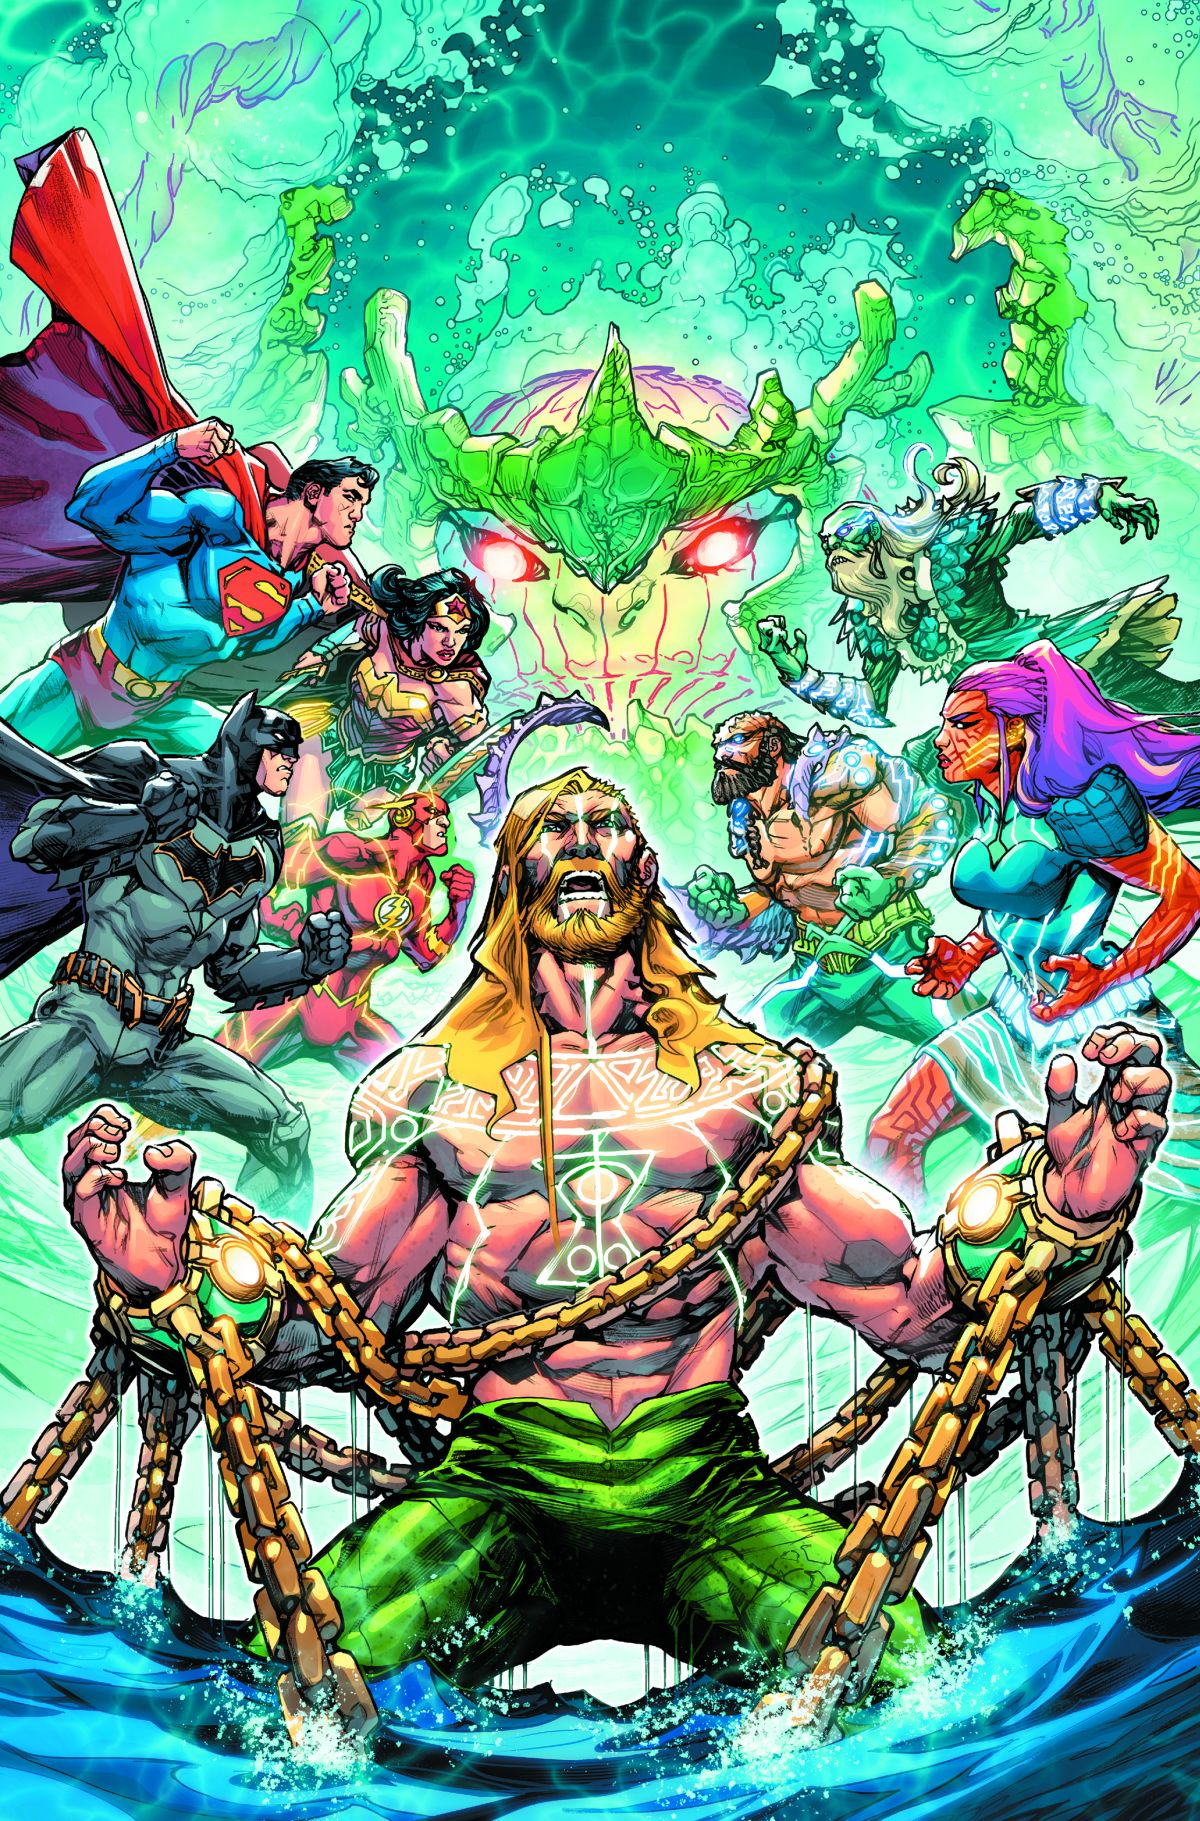 JUSTICE LEAGUE/AQUAMAN: DROWNED EARTH #1